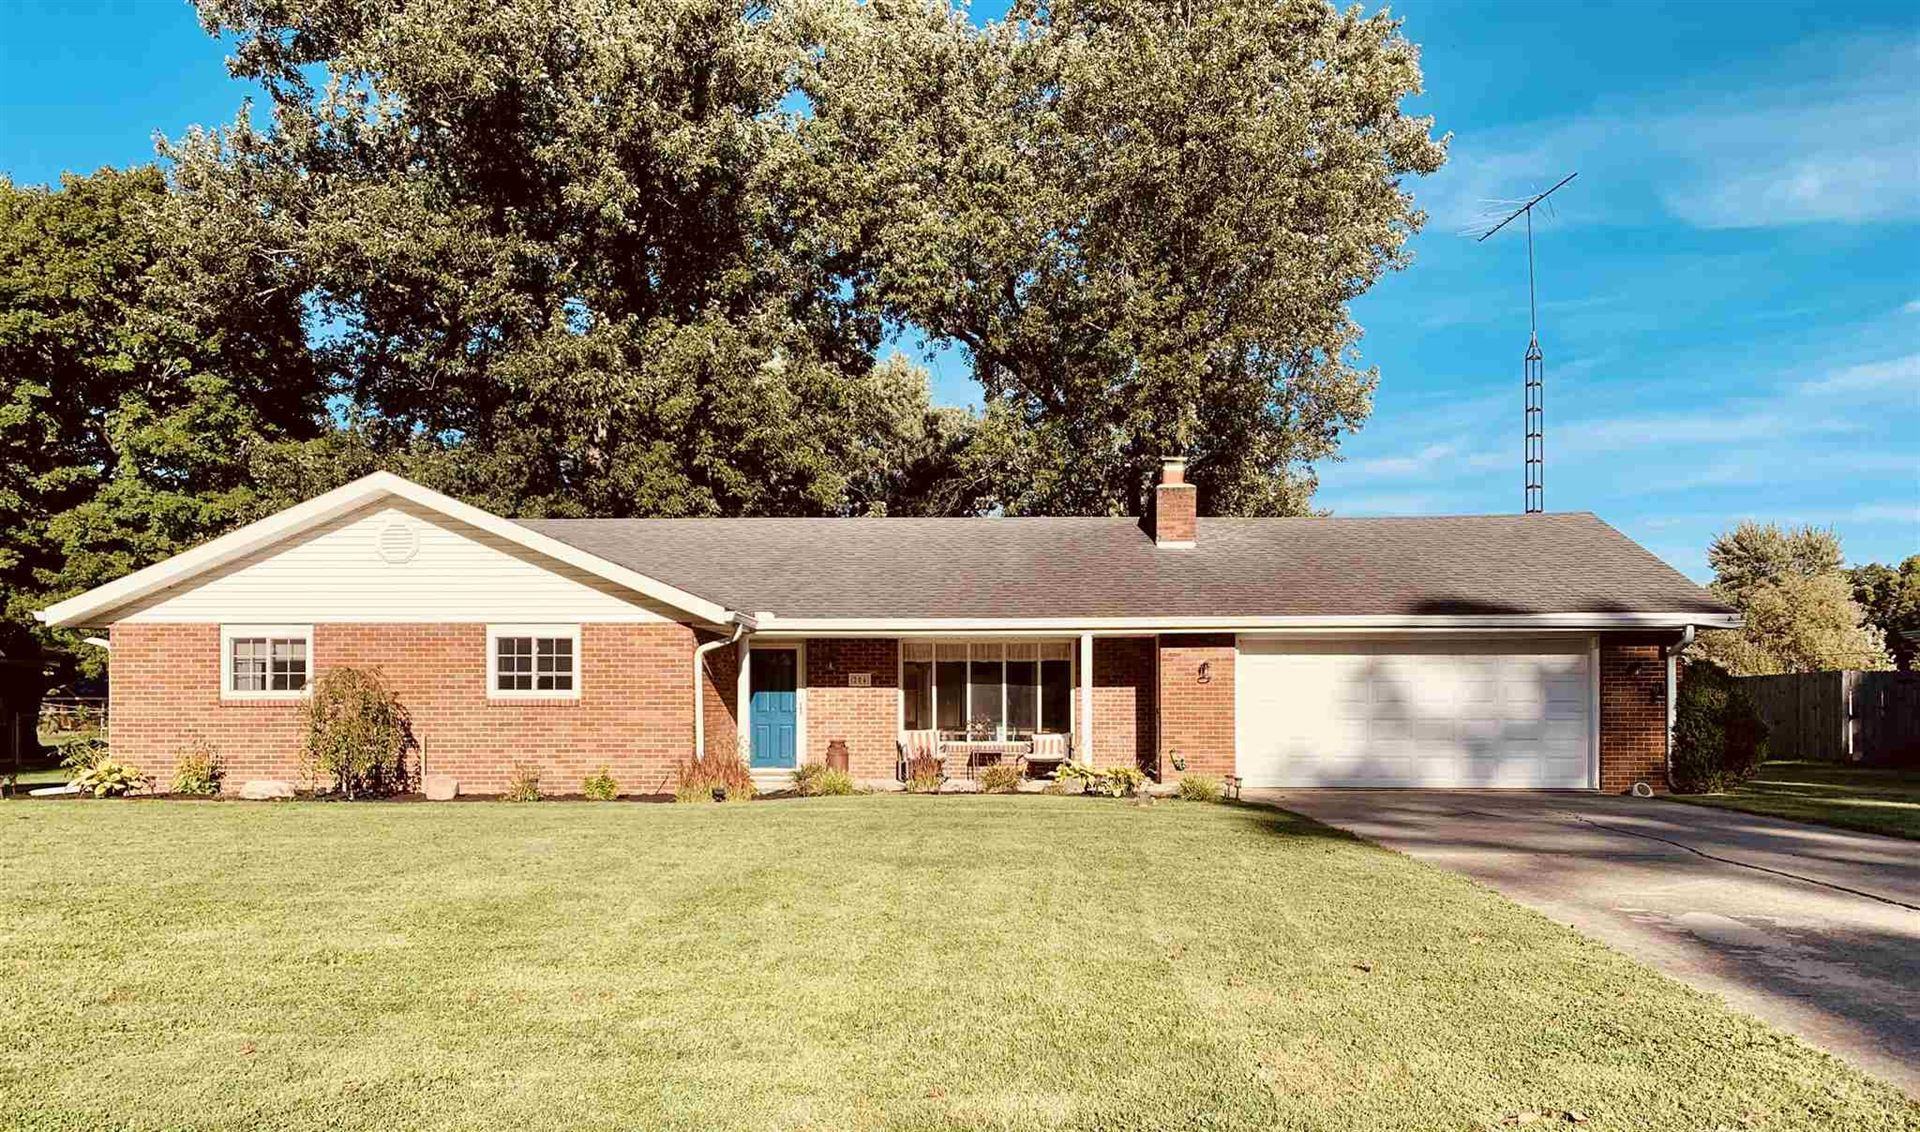 204 N Bayberry Lane, Muncie, IN 47304 - #: 202036013